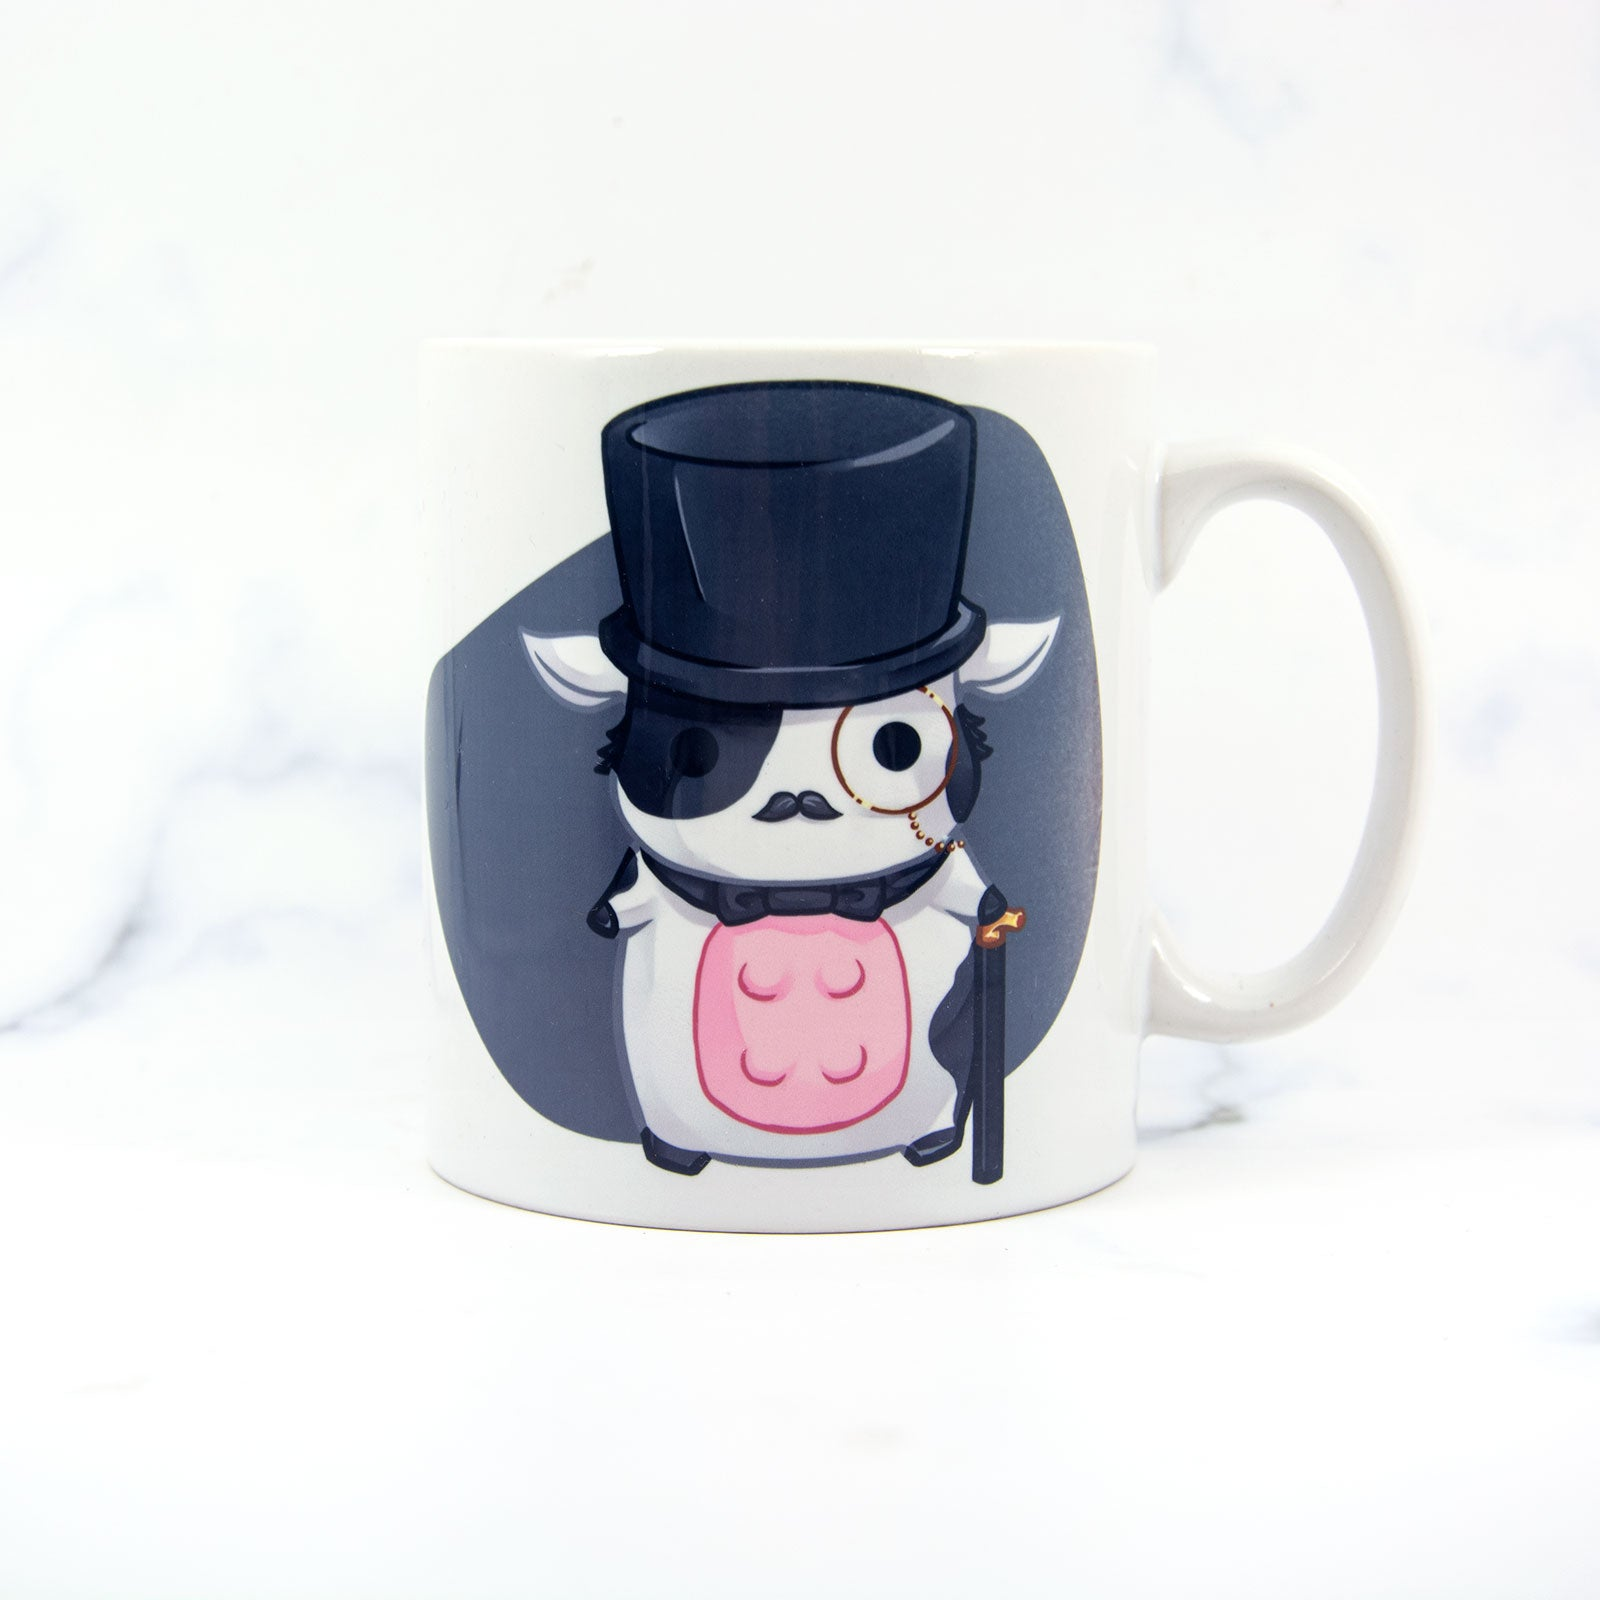 Kawaii chibi animal tophat cow cup - MadModesty